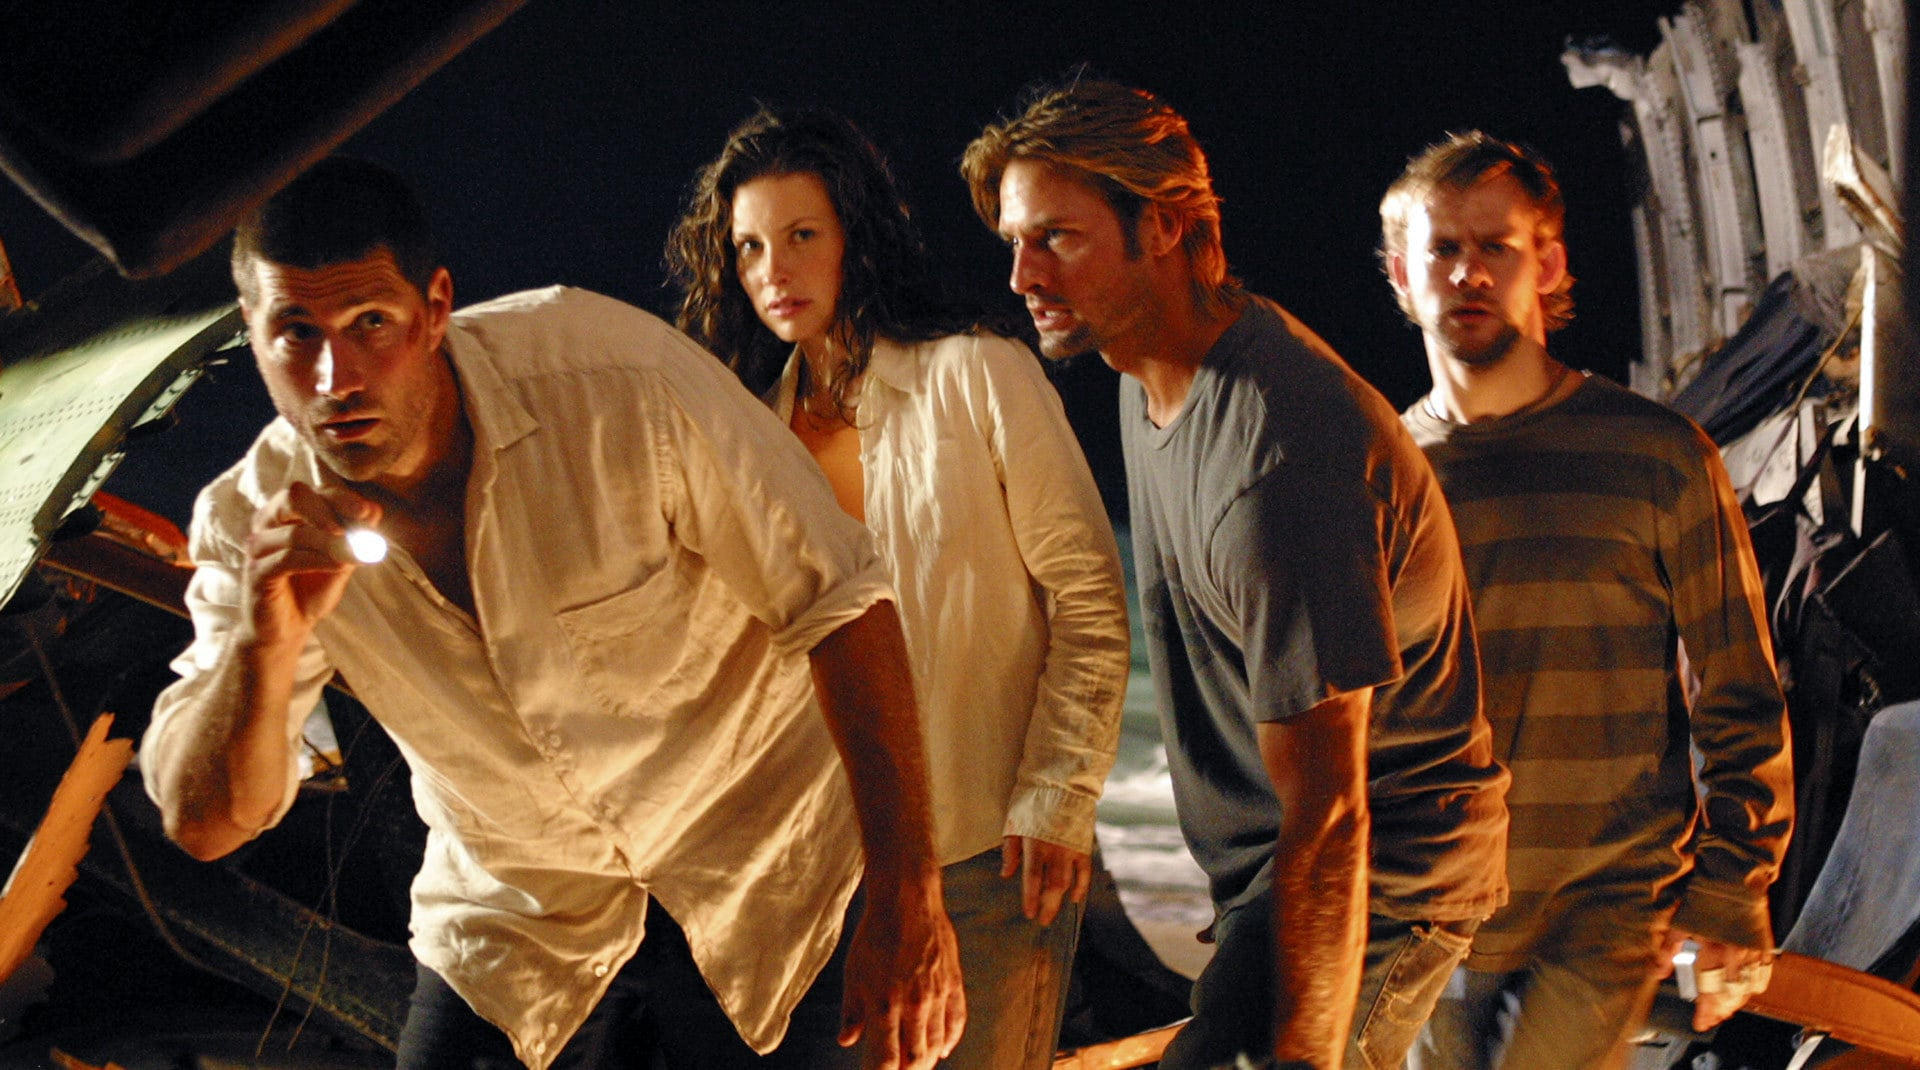 A still image from Lost